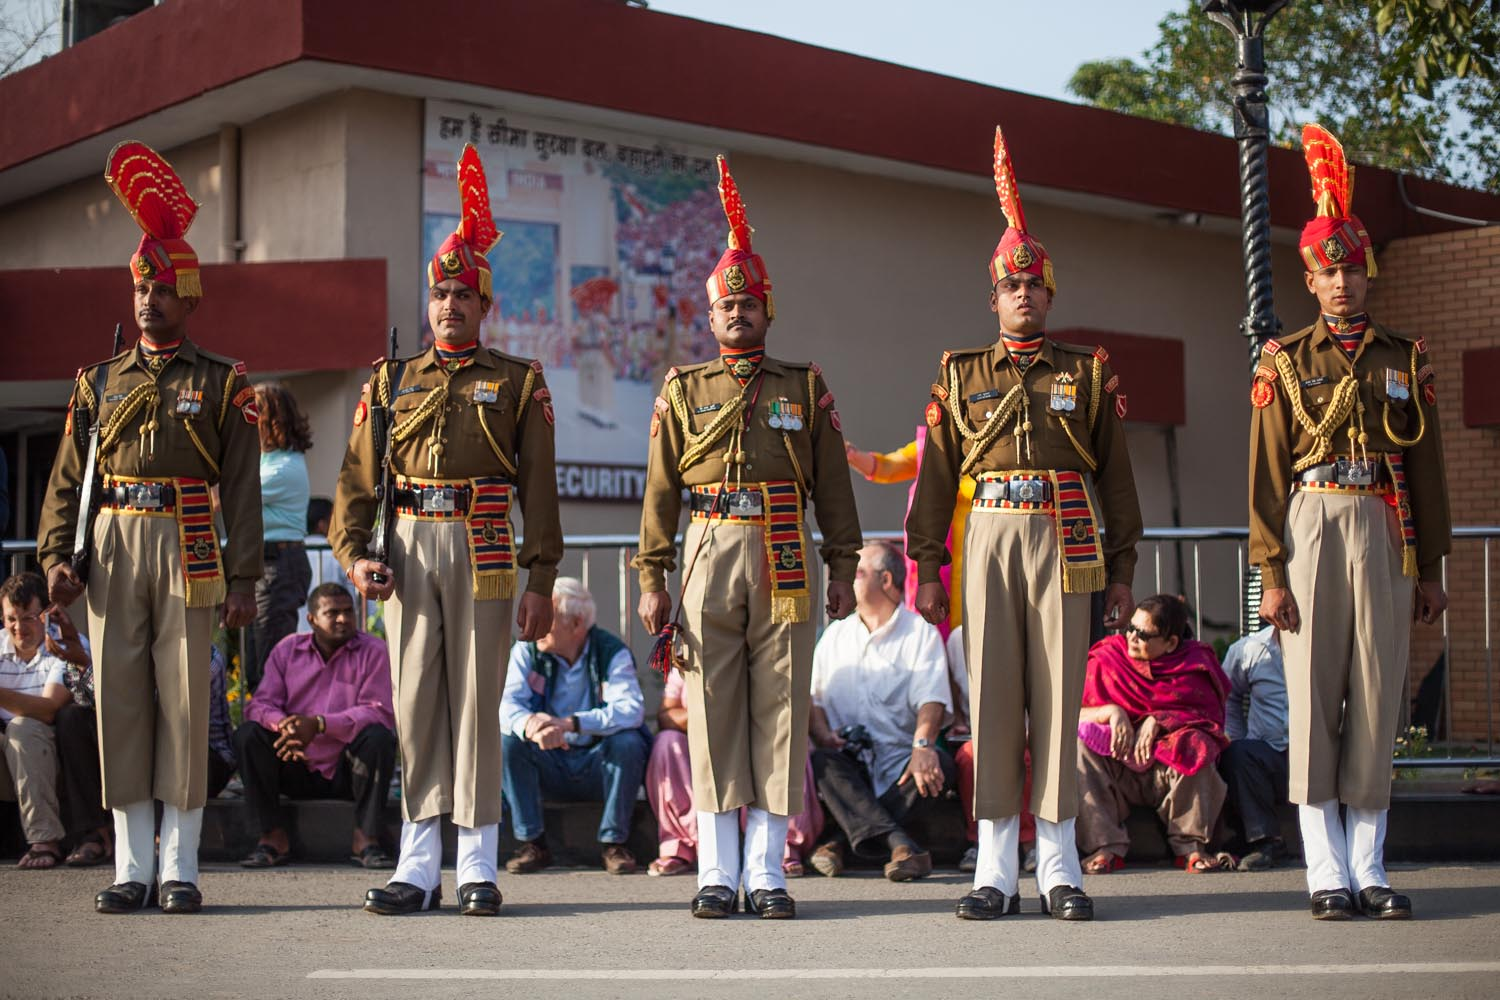 The Wagah Border Ceremony: Amritsar, Punjab